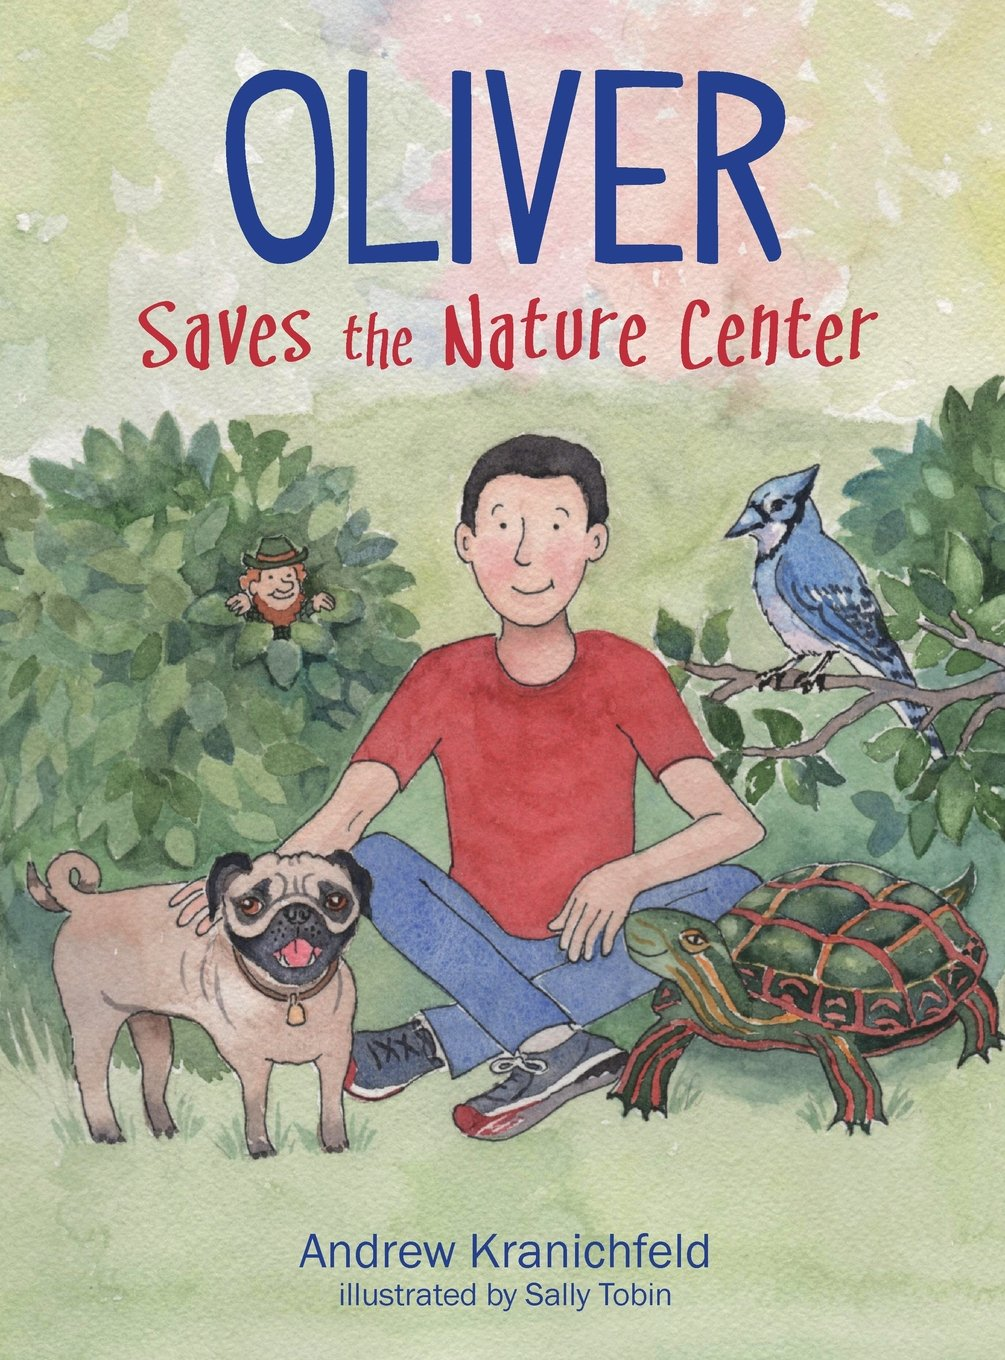 Oliver Saves The Nature Center: An engaging introduction to ecology and environmentalism pdf